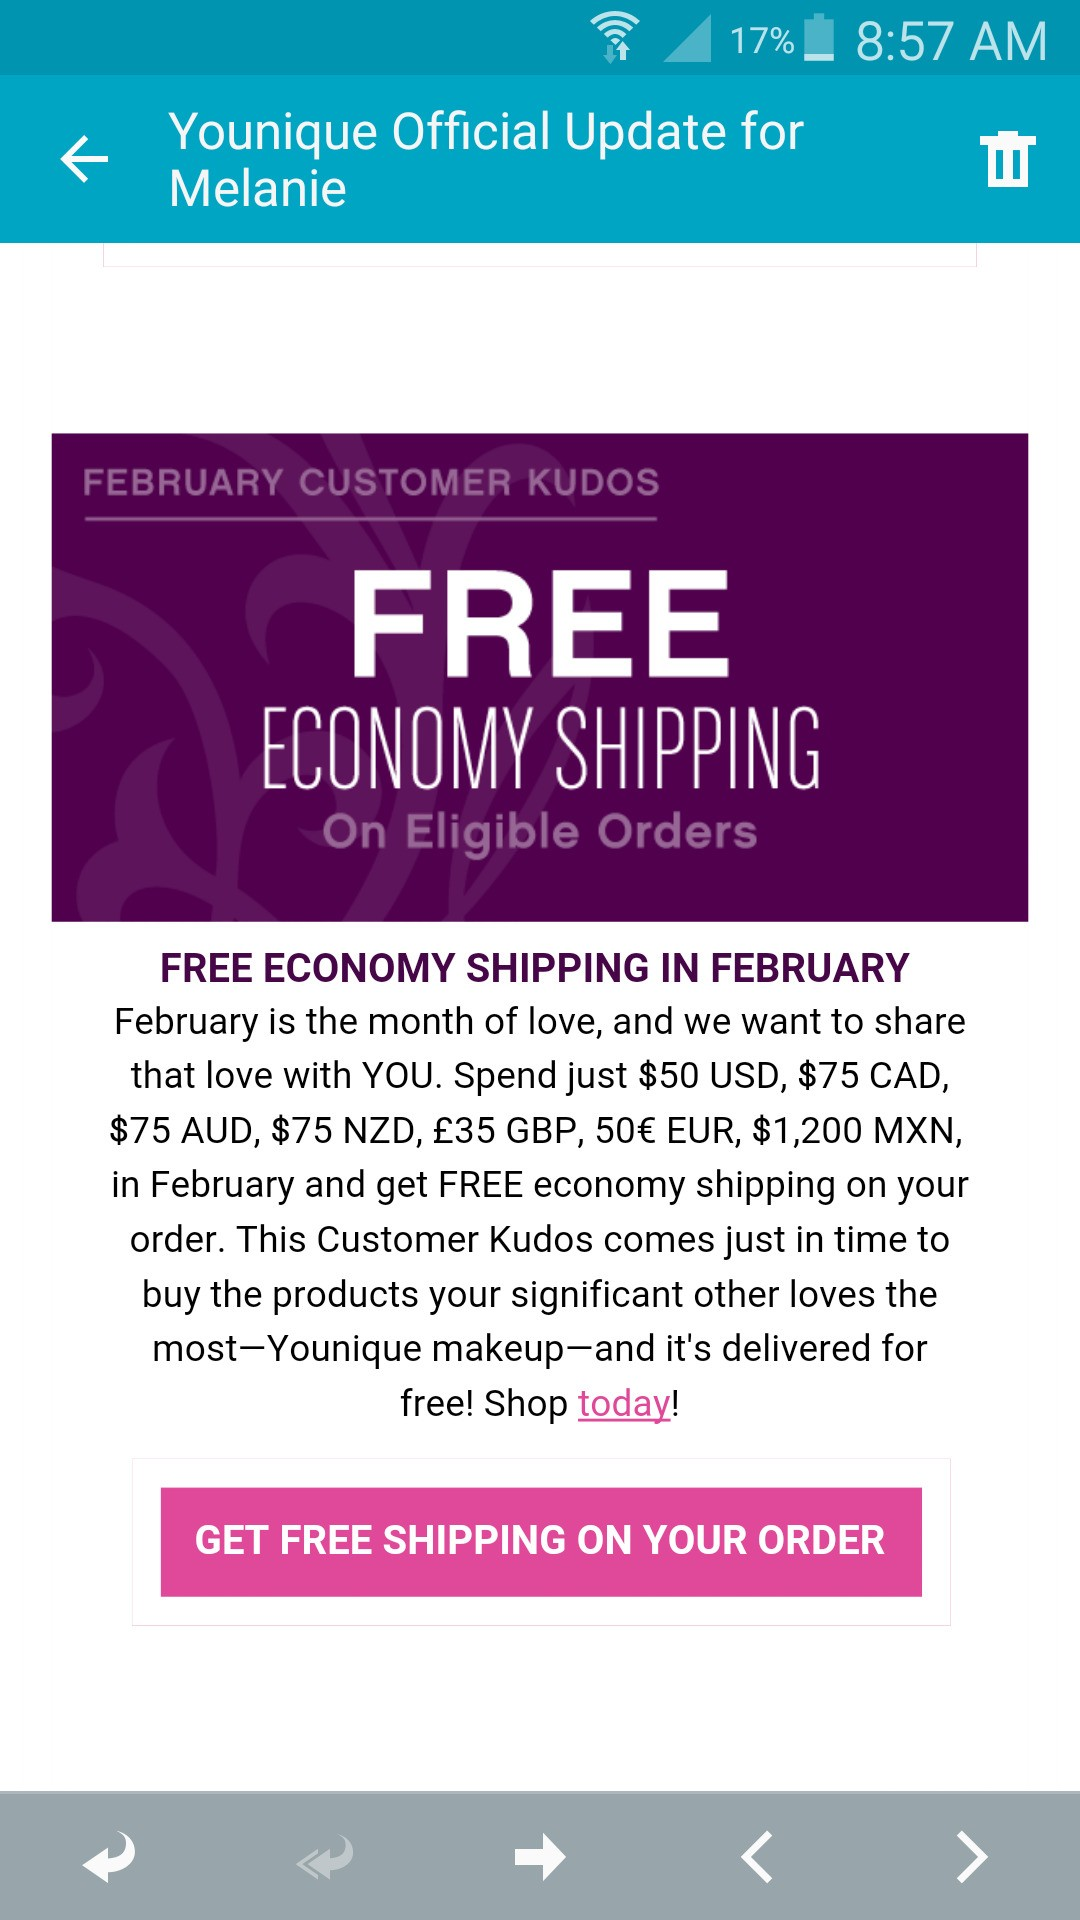 Do not miss out on this amazing free shipping deal for February. #free #freeshipping #melsyouniquelife #ilovemakeup #beautyobsessed #makeup #cairns #cairnsgirl #cairnslife #youniquemakeup #getitnow